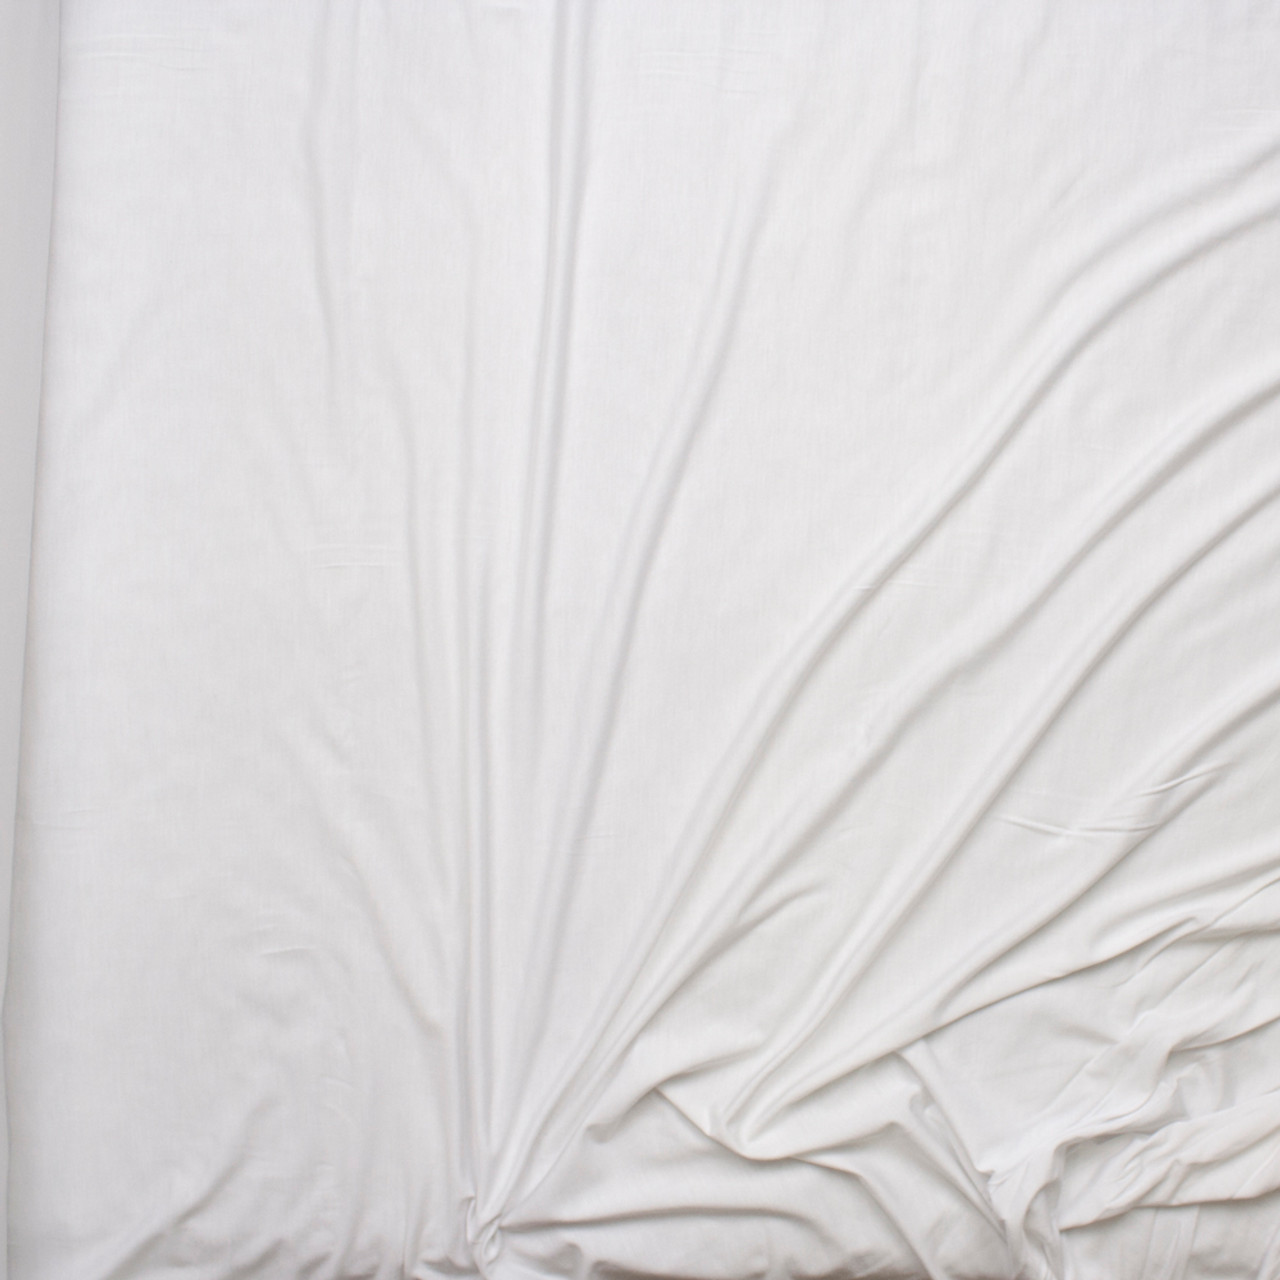 4a3f64a75f8 ... White Stretch Modal Jersey Knit Fabric By The Yard - Wide shot